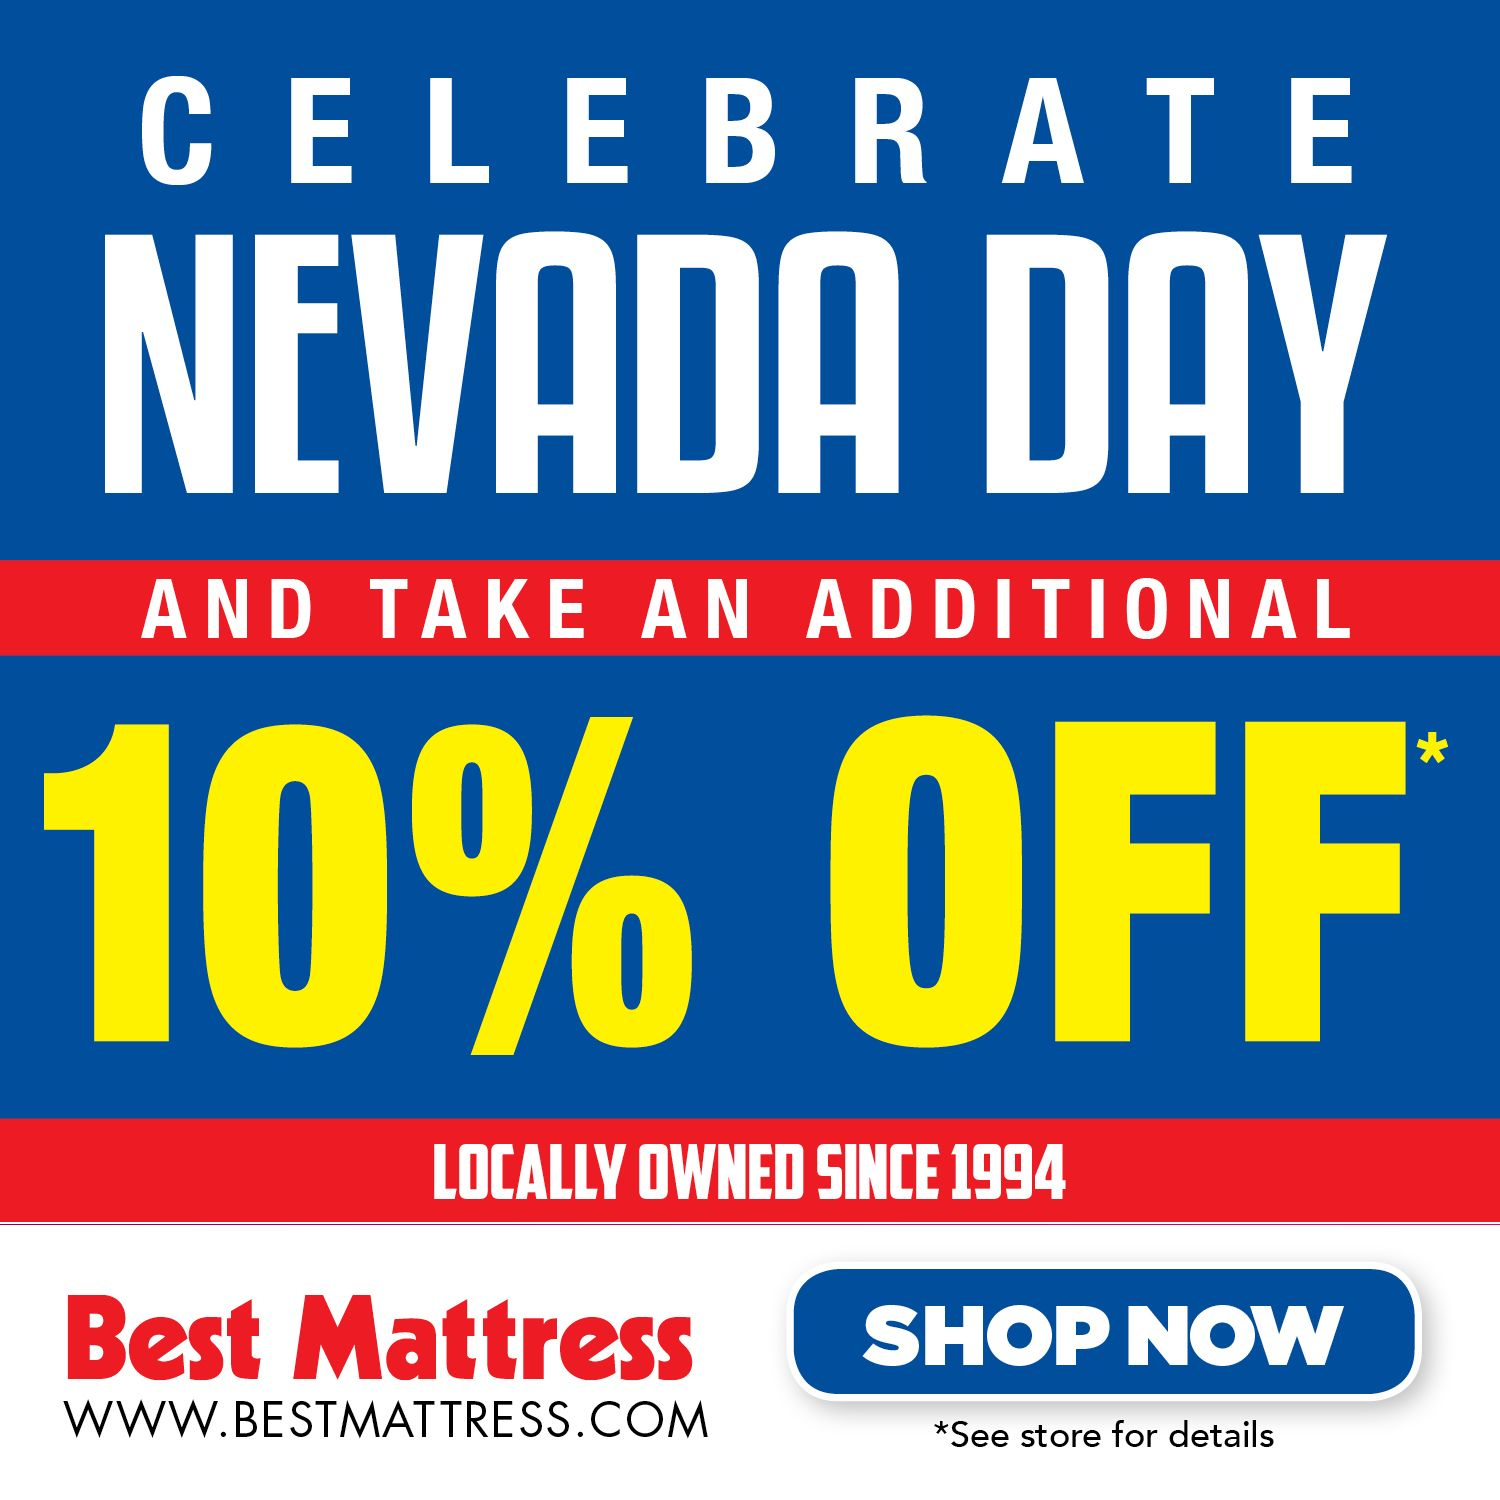 Celebrate Nevada Day at Best Mattress and take an